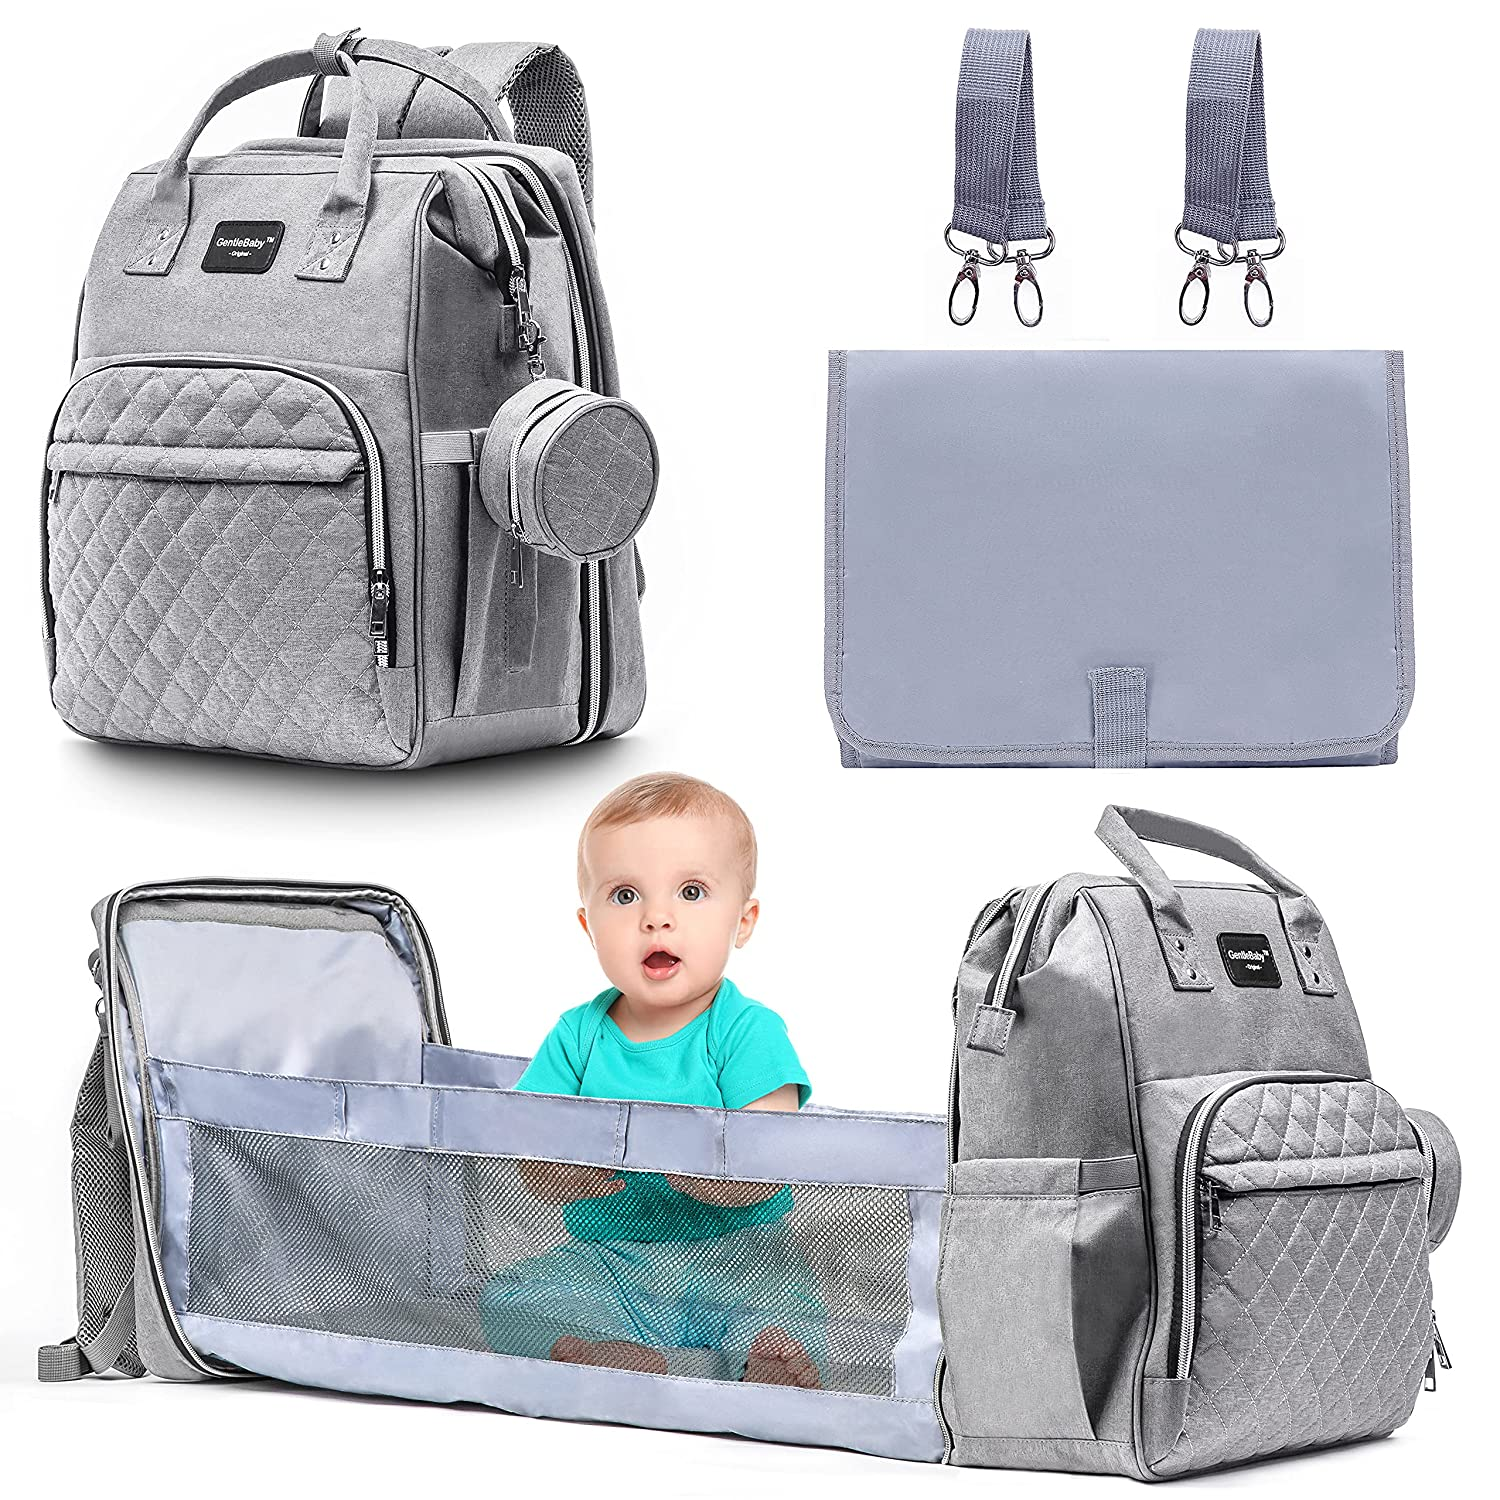 Baby Diaper Bag Backpack with Changing Station - Stylish 3 in 1 for Boys & Girls - Waterproof, Large Capacity, PacifierCase, Bassinet, Pad, Stroller Straps, Travel, Bed, Gift mom dad– Gray/Grey